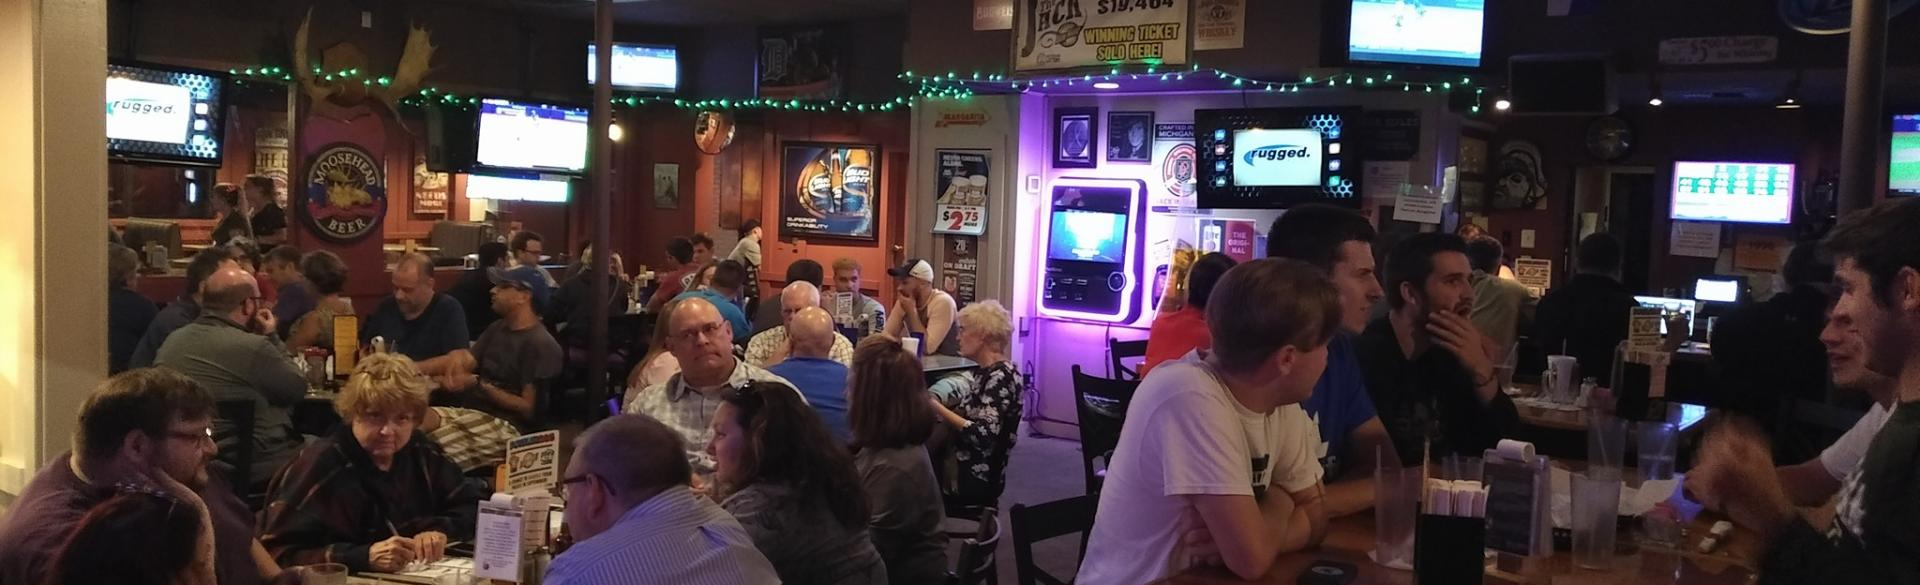 Grand Rapids Bars & Restaurants with Trivia Nights | Nightlife